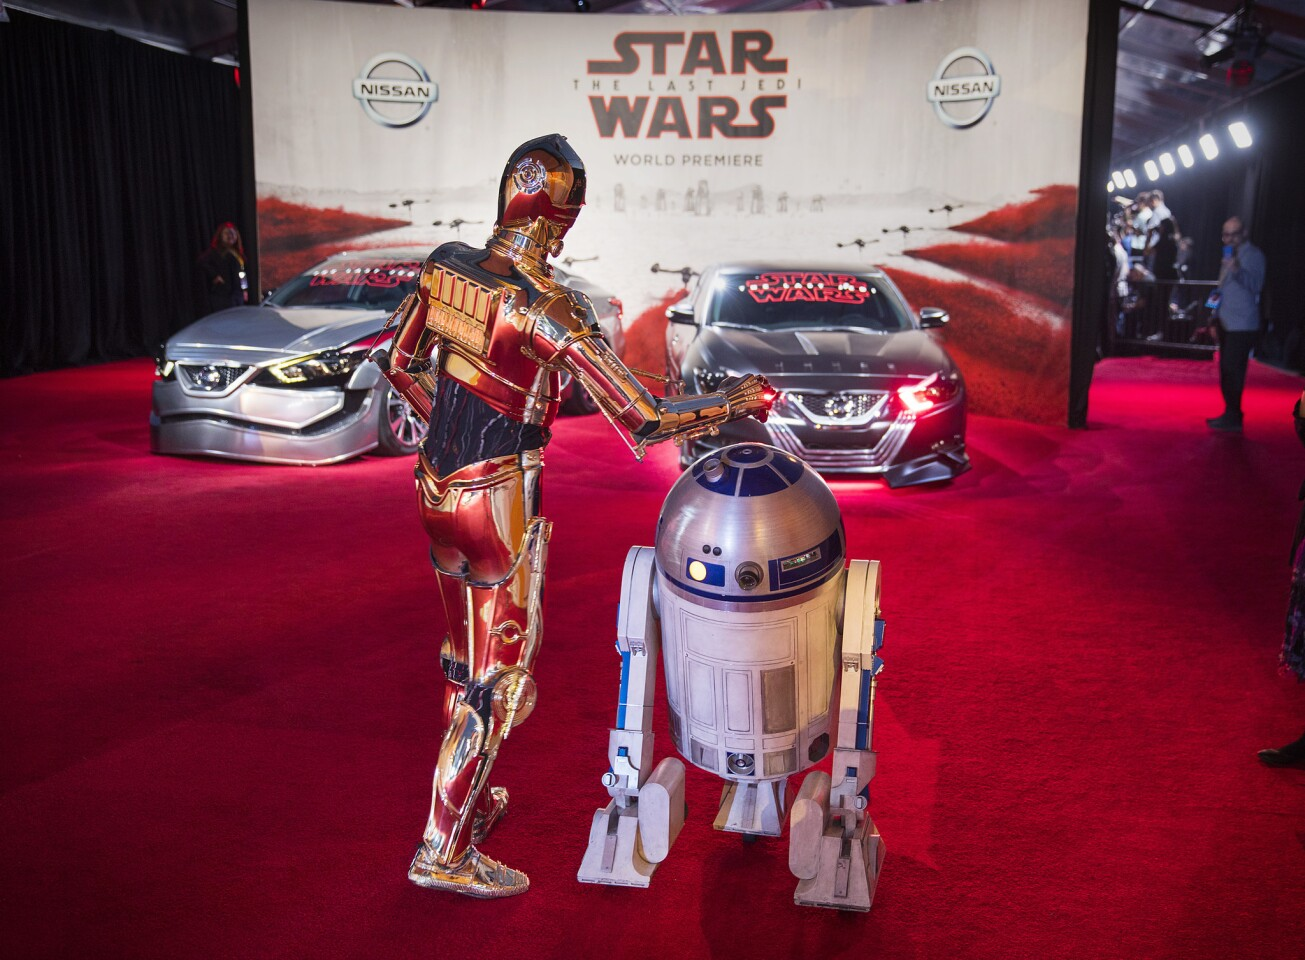 IMAGE DISTRIBUTED FOR NISSAN - Andy Serkis arrives at the World Premiere of Stars Wars The Last Jedi where film partner Nissan showcased their interpretation of character vehicles on Saturday, Dec. 9, 2017 in Los Angeles. (Photo by Colin Young-Wolff/Invision for Nissan/AP Images)